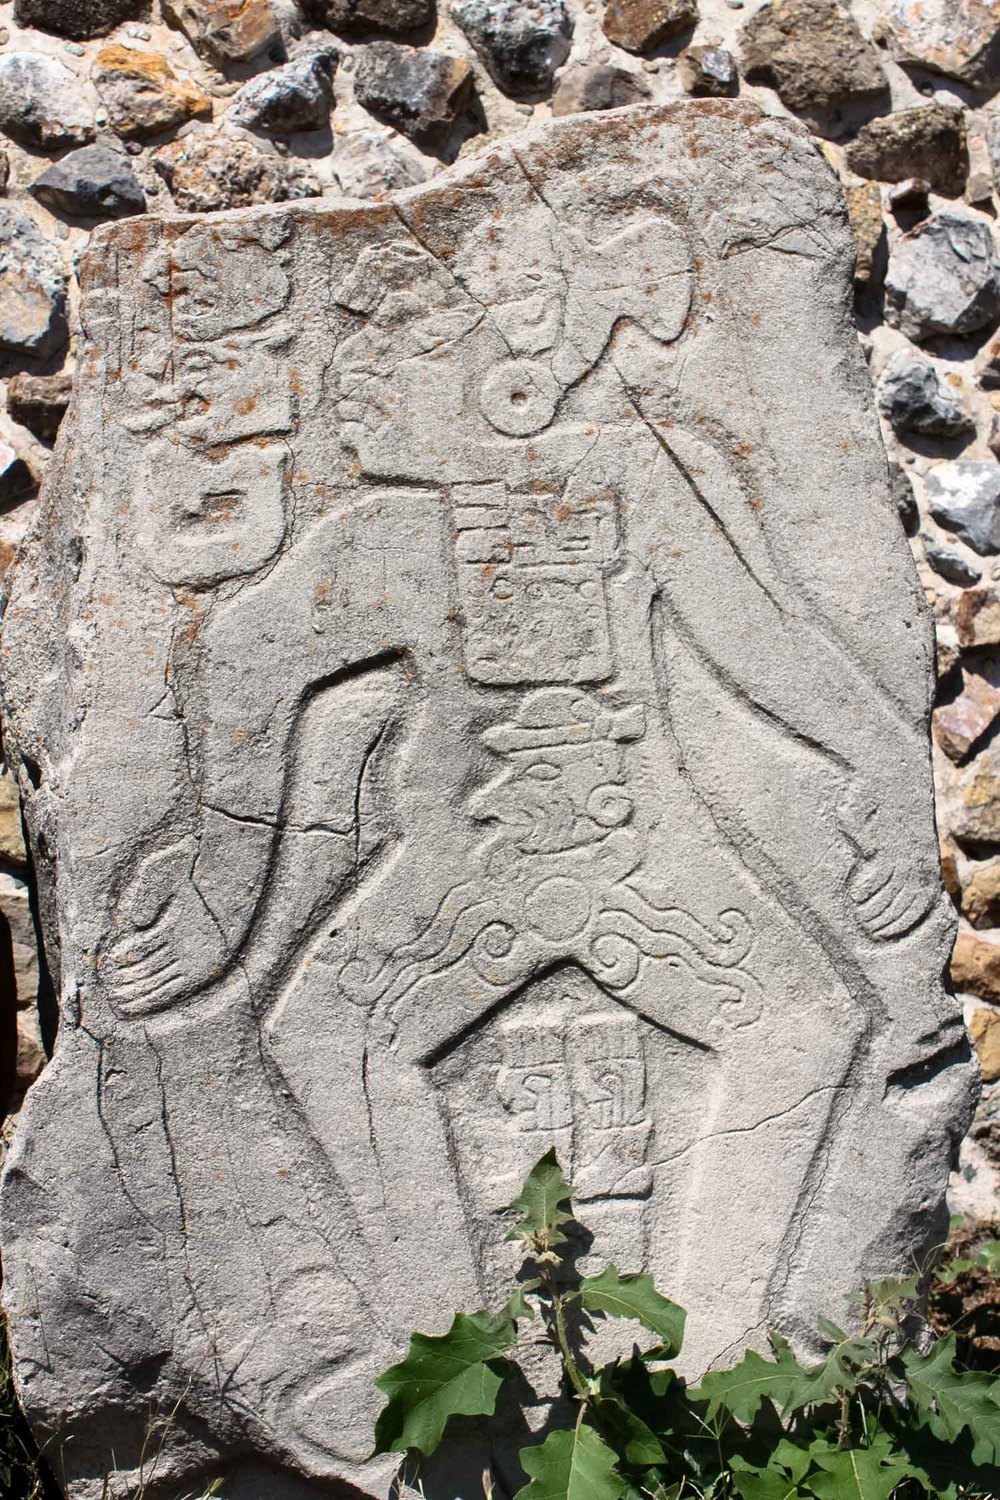 stone carving of los dazantes in monte alban oaxaca